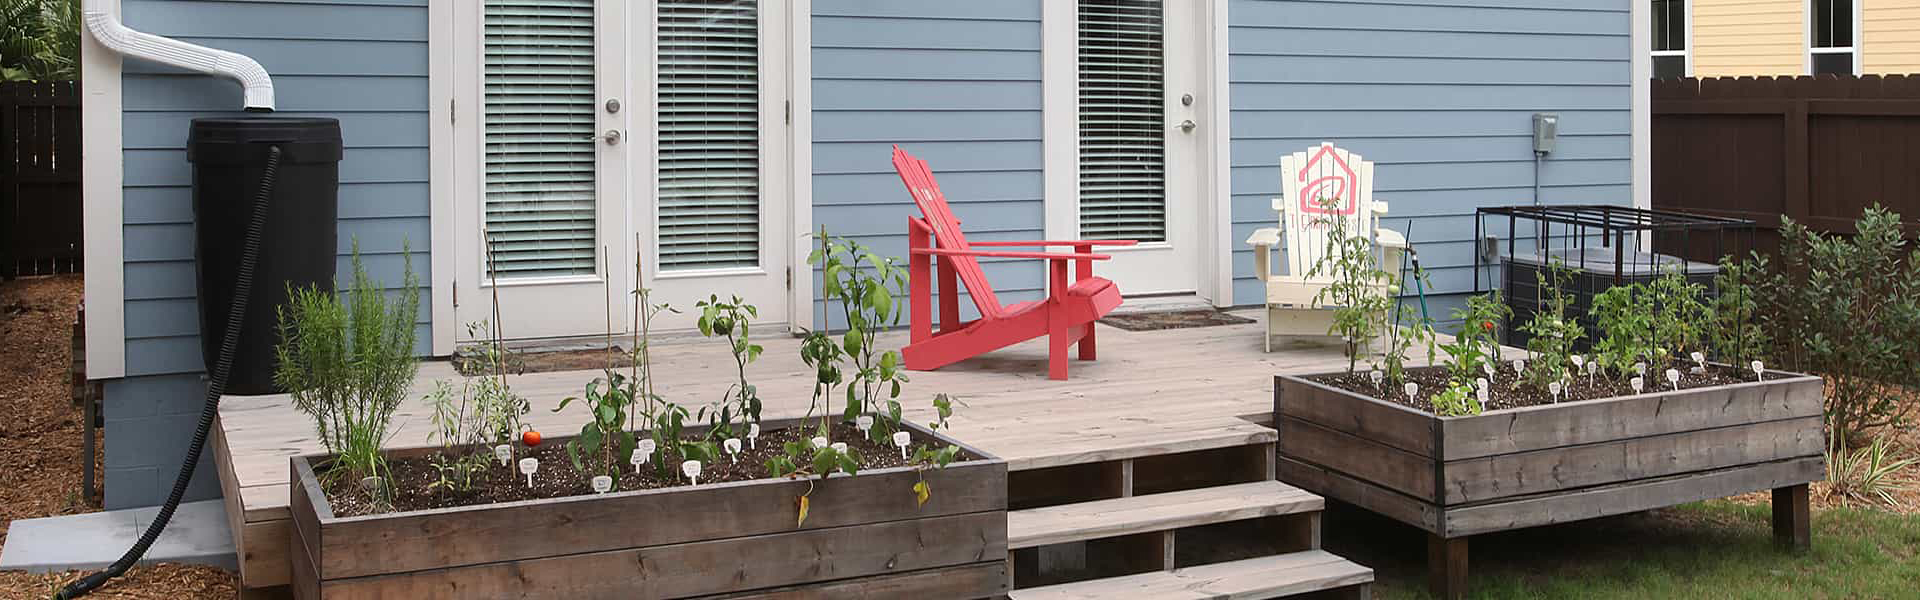 Green Building concepts like downspout collectors available in every TerraWise Home.